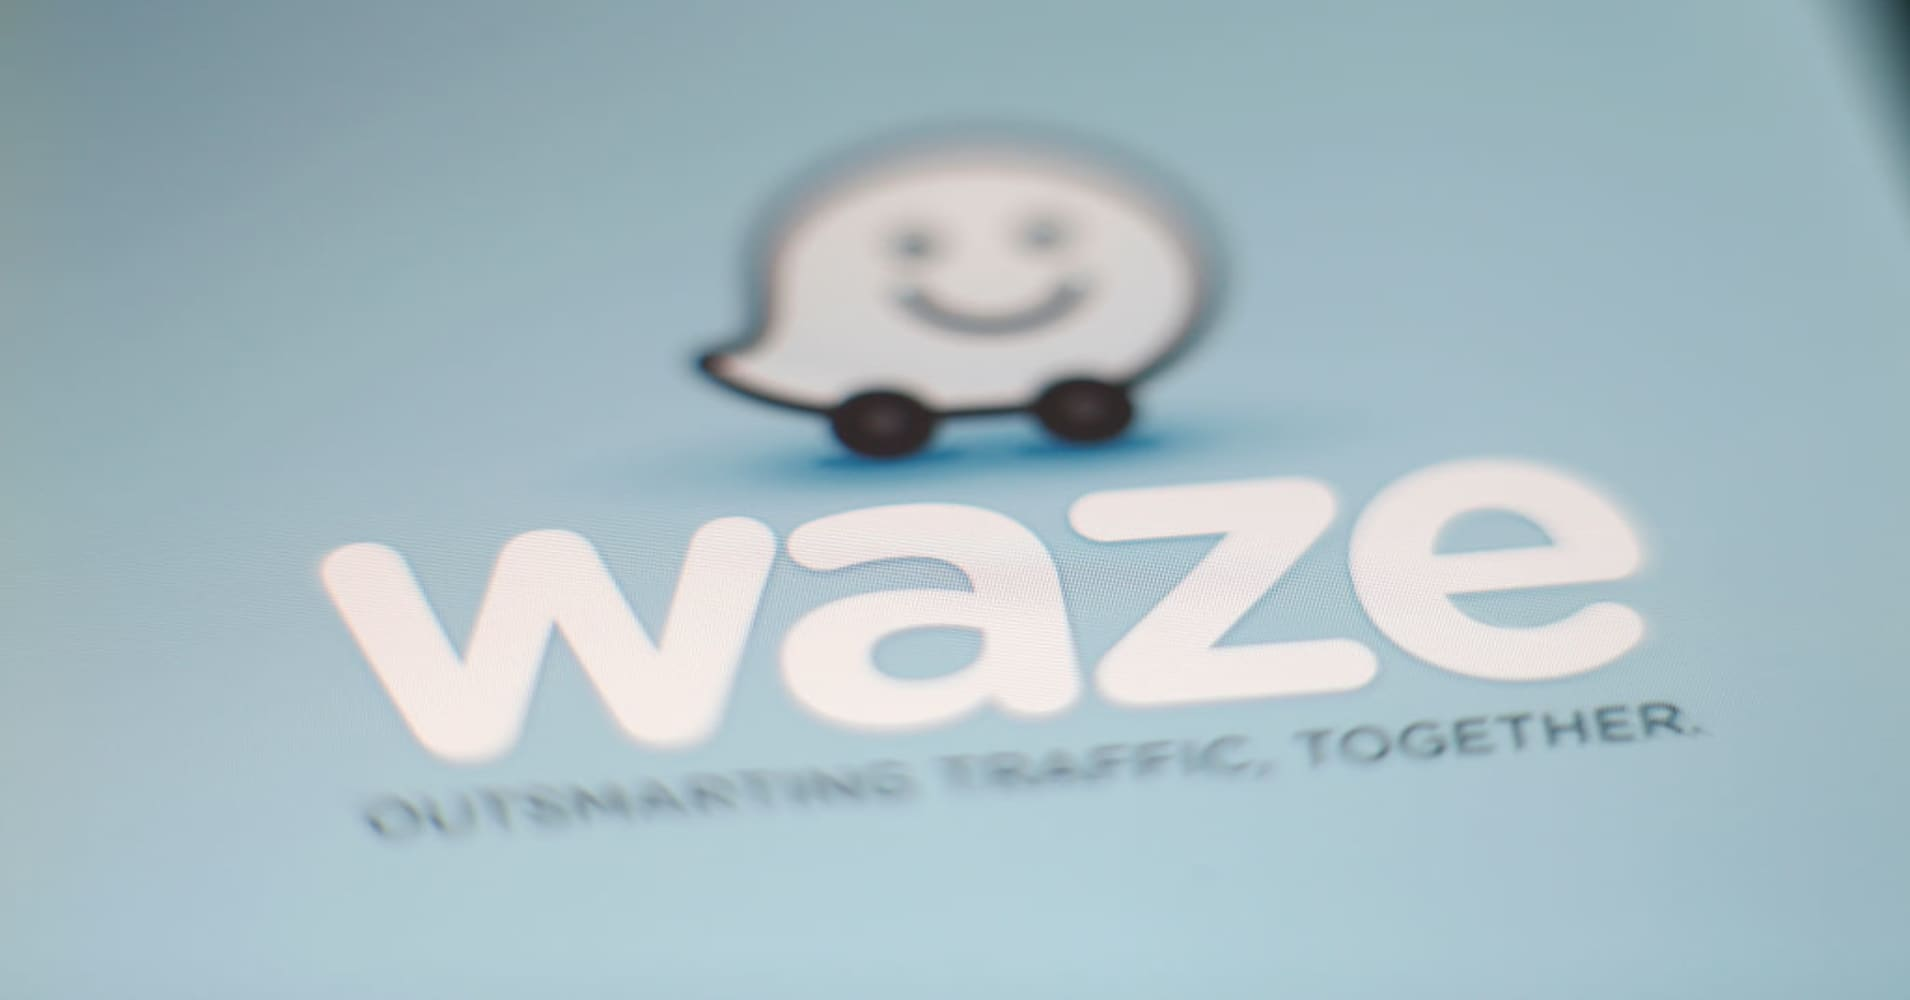 How to use Google Waze for directions and avoiding traffic